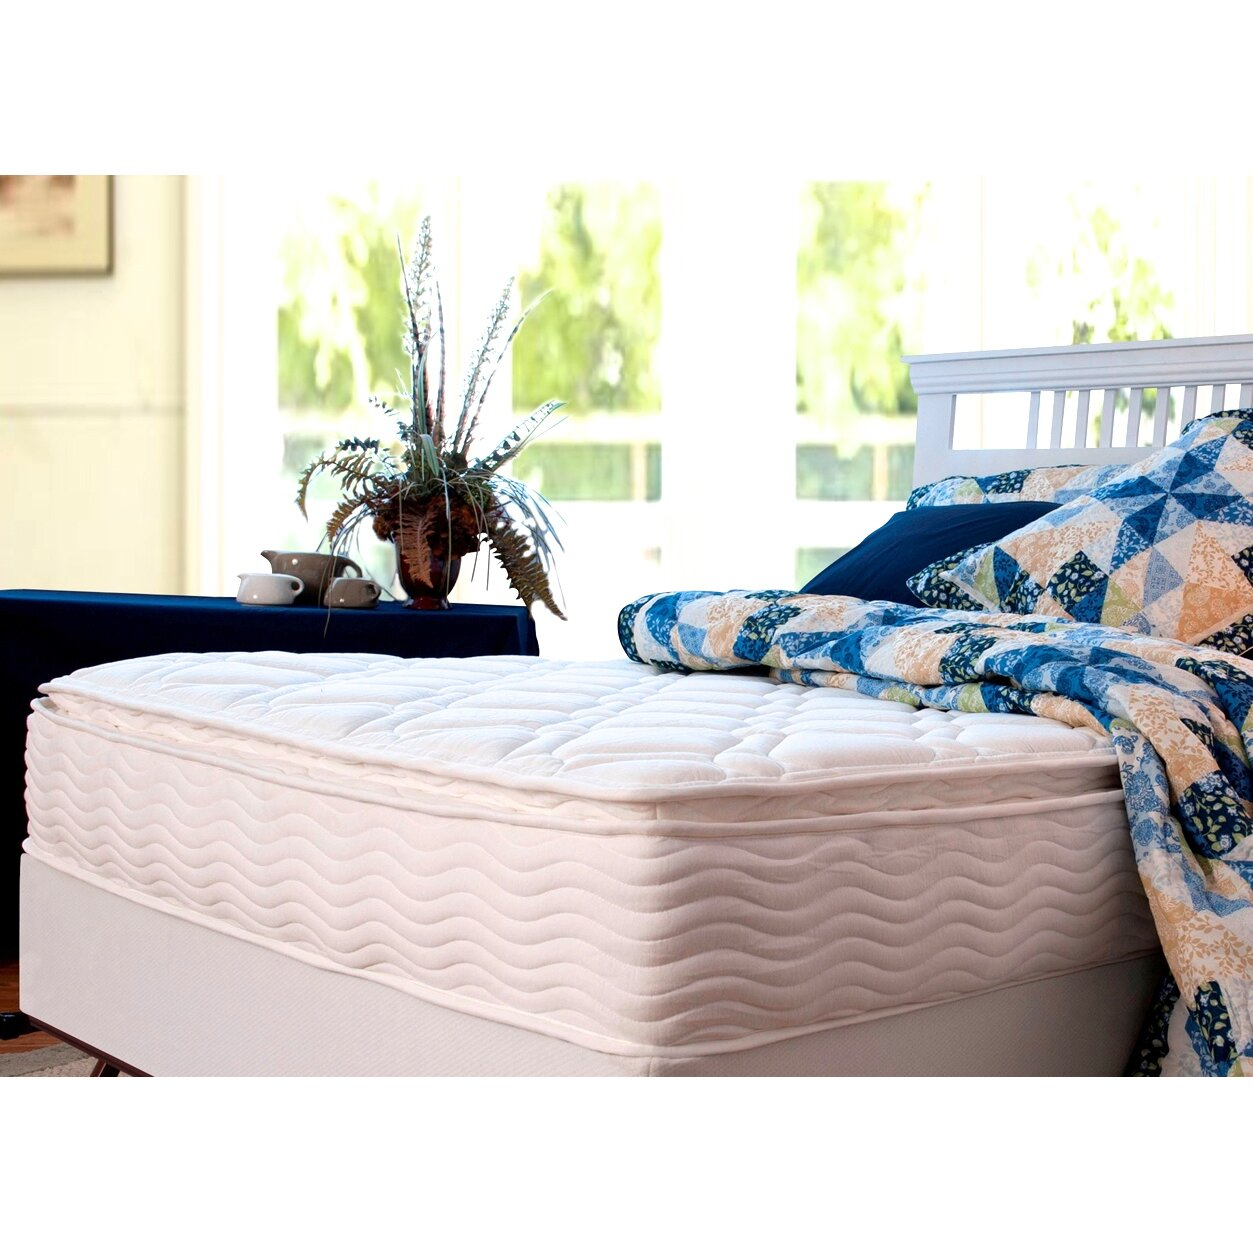 Orthotherapy  Euro Box Top Spring Mattress Steel Foundation Set